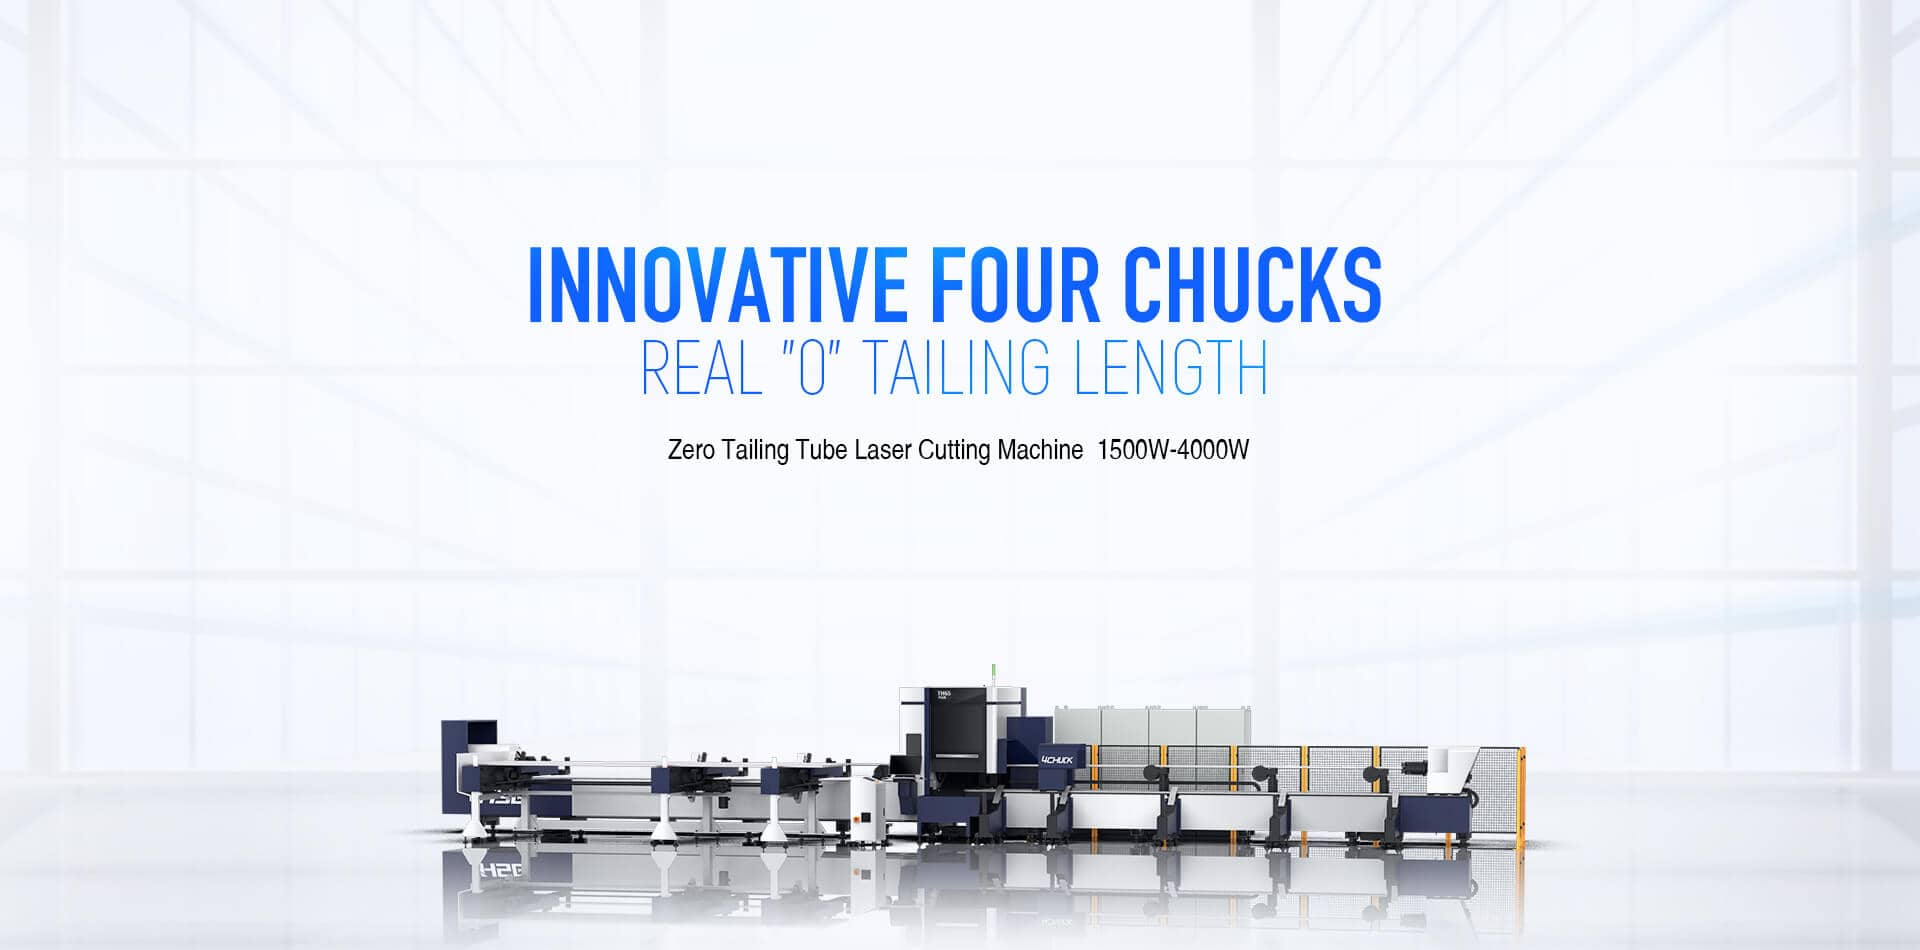 TH65Plus Series Zero Tailing Tube Laser Cutting Machine